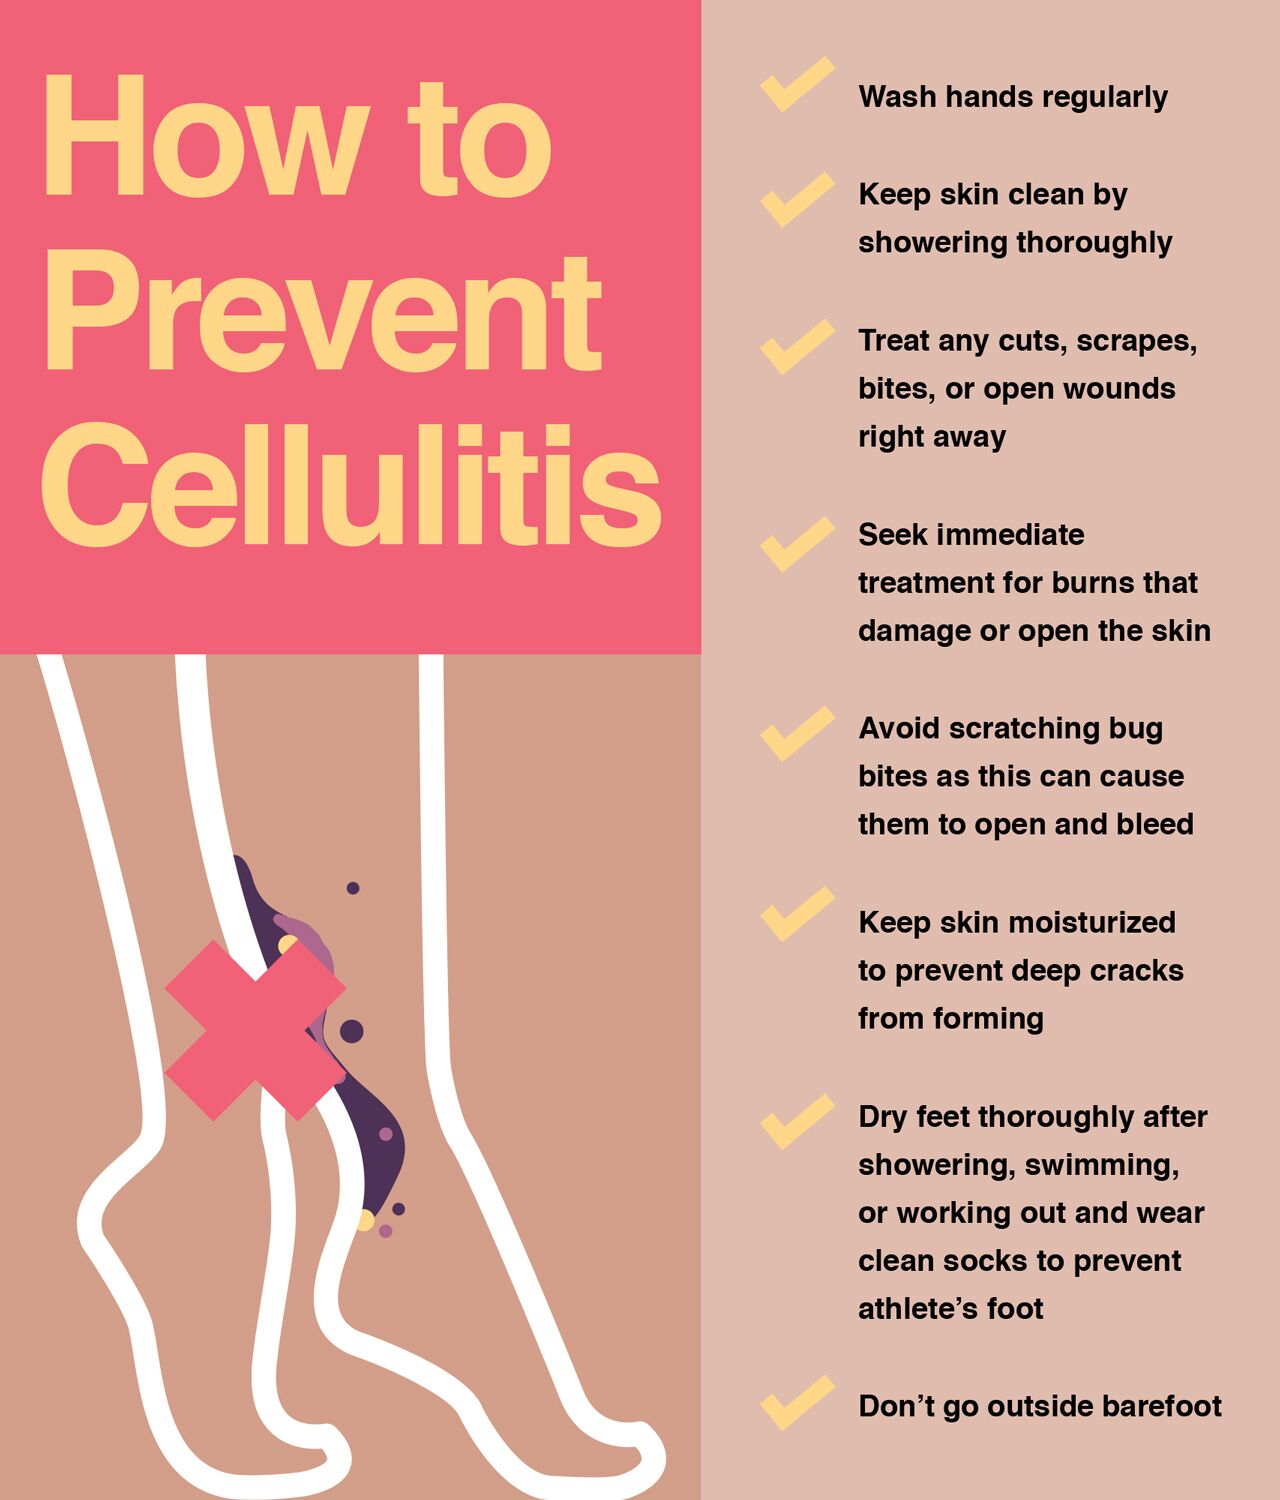 How to prevent cellulitis